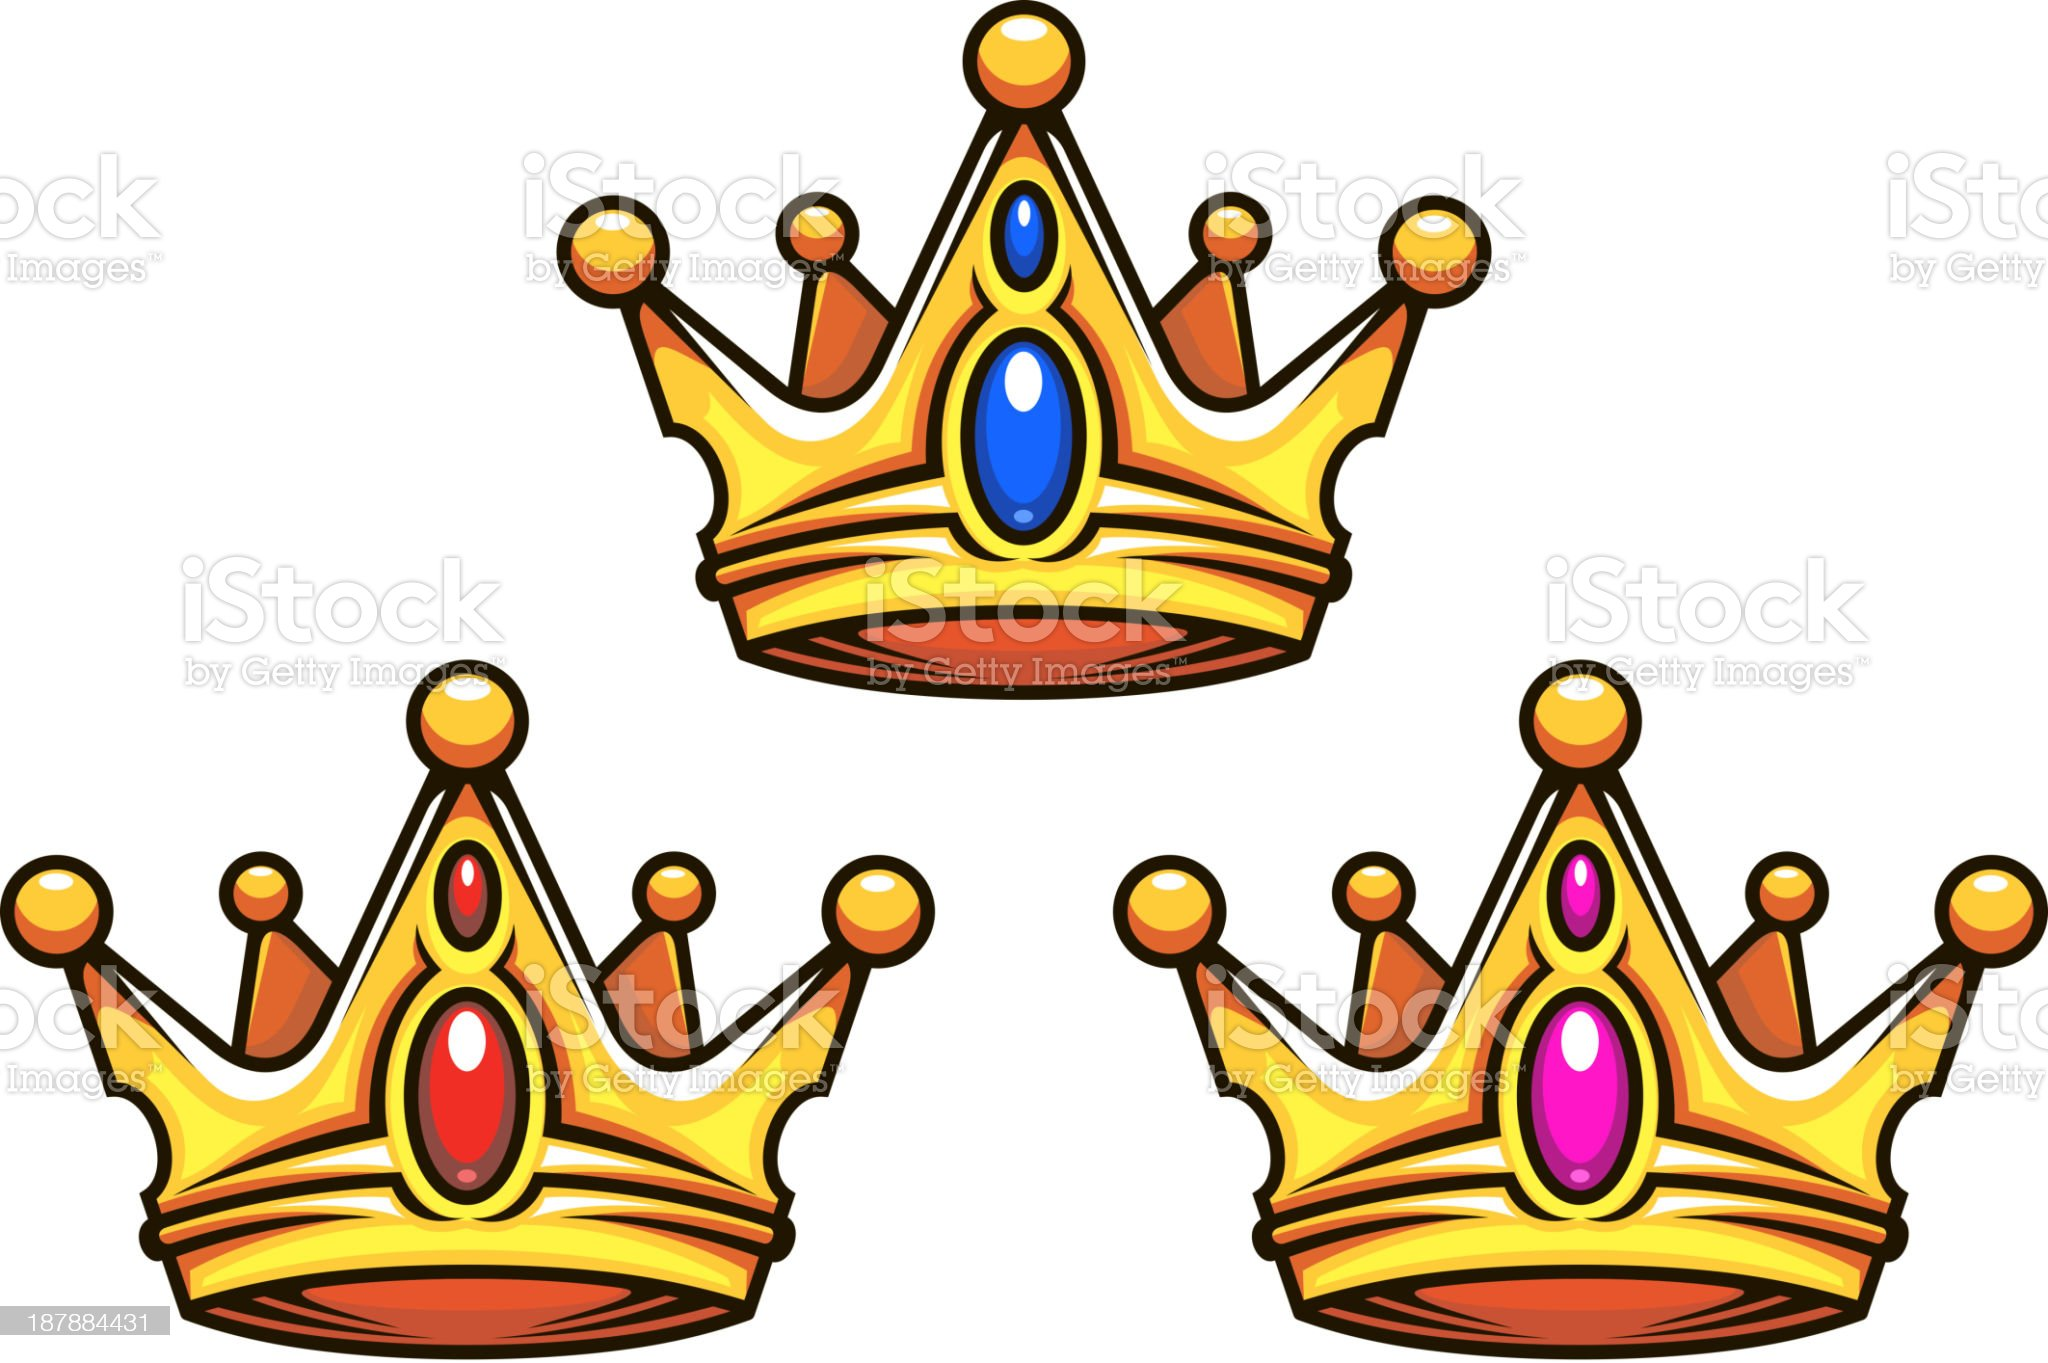 Colden royal crowns with jewelry elements royalty-free stock vector art